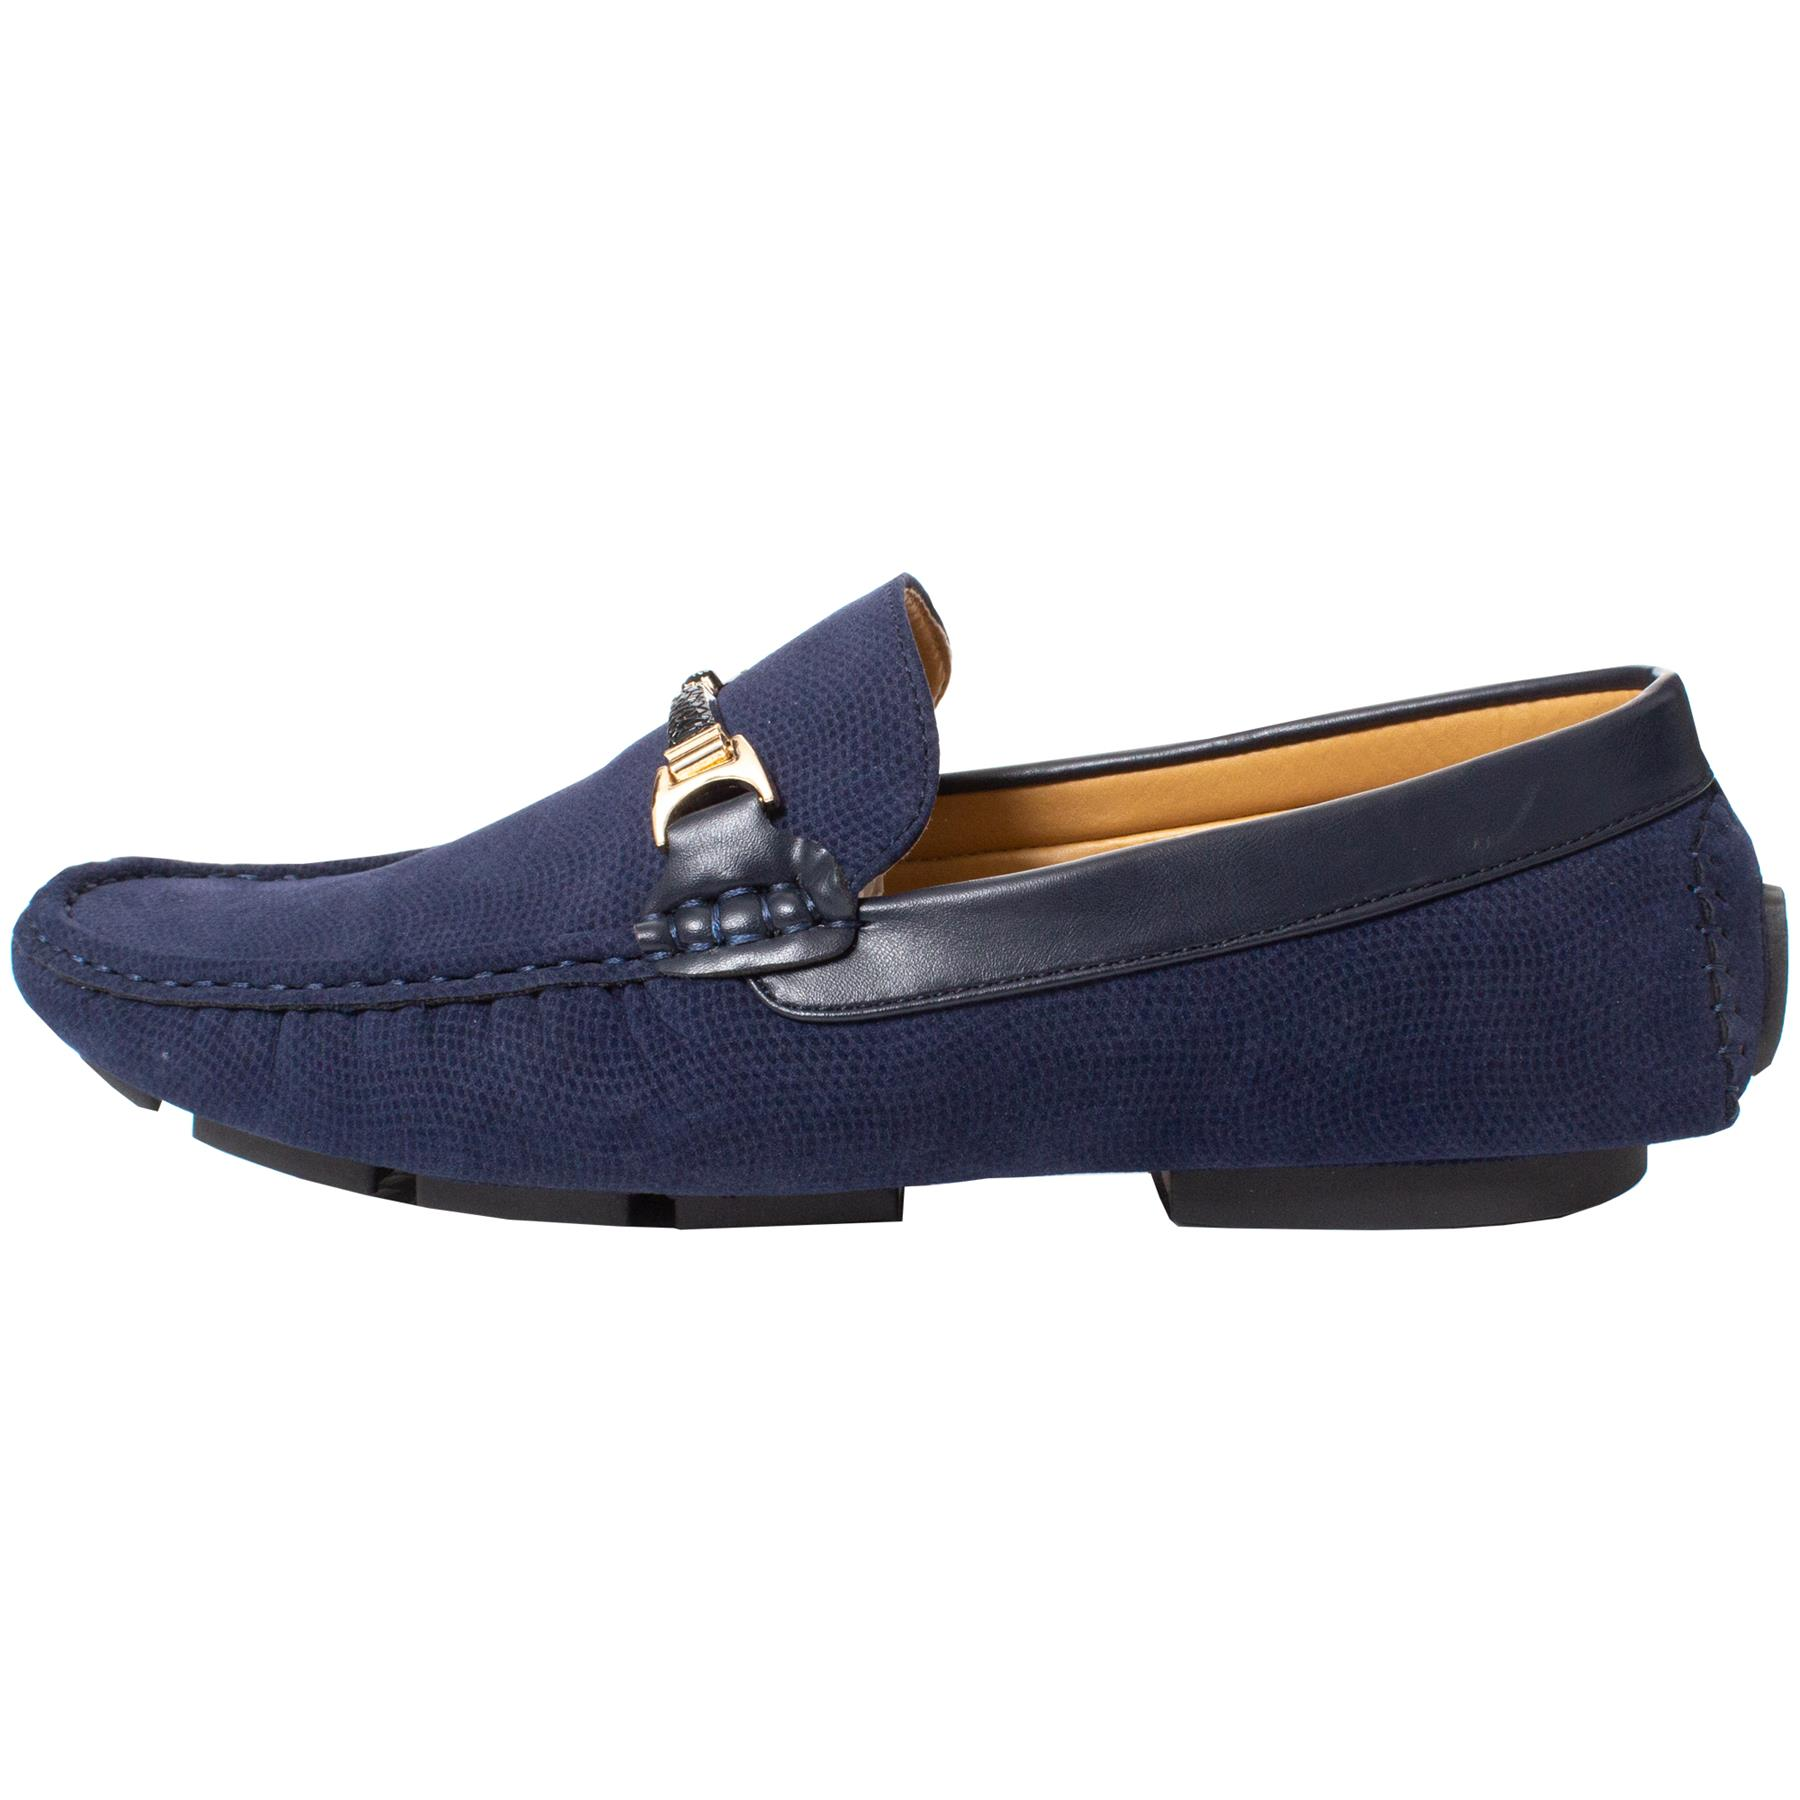 Mens-Slip-Ons-Shoes-Boat-Deck-Driving-Smart-Buckle-Moccasins-Suede-Look-Loafers thumbnail 46